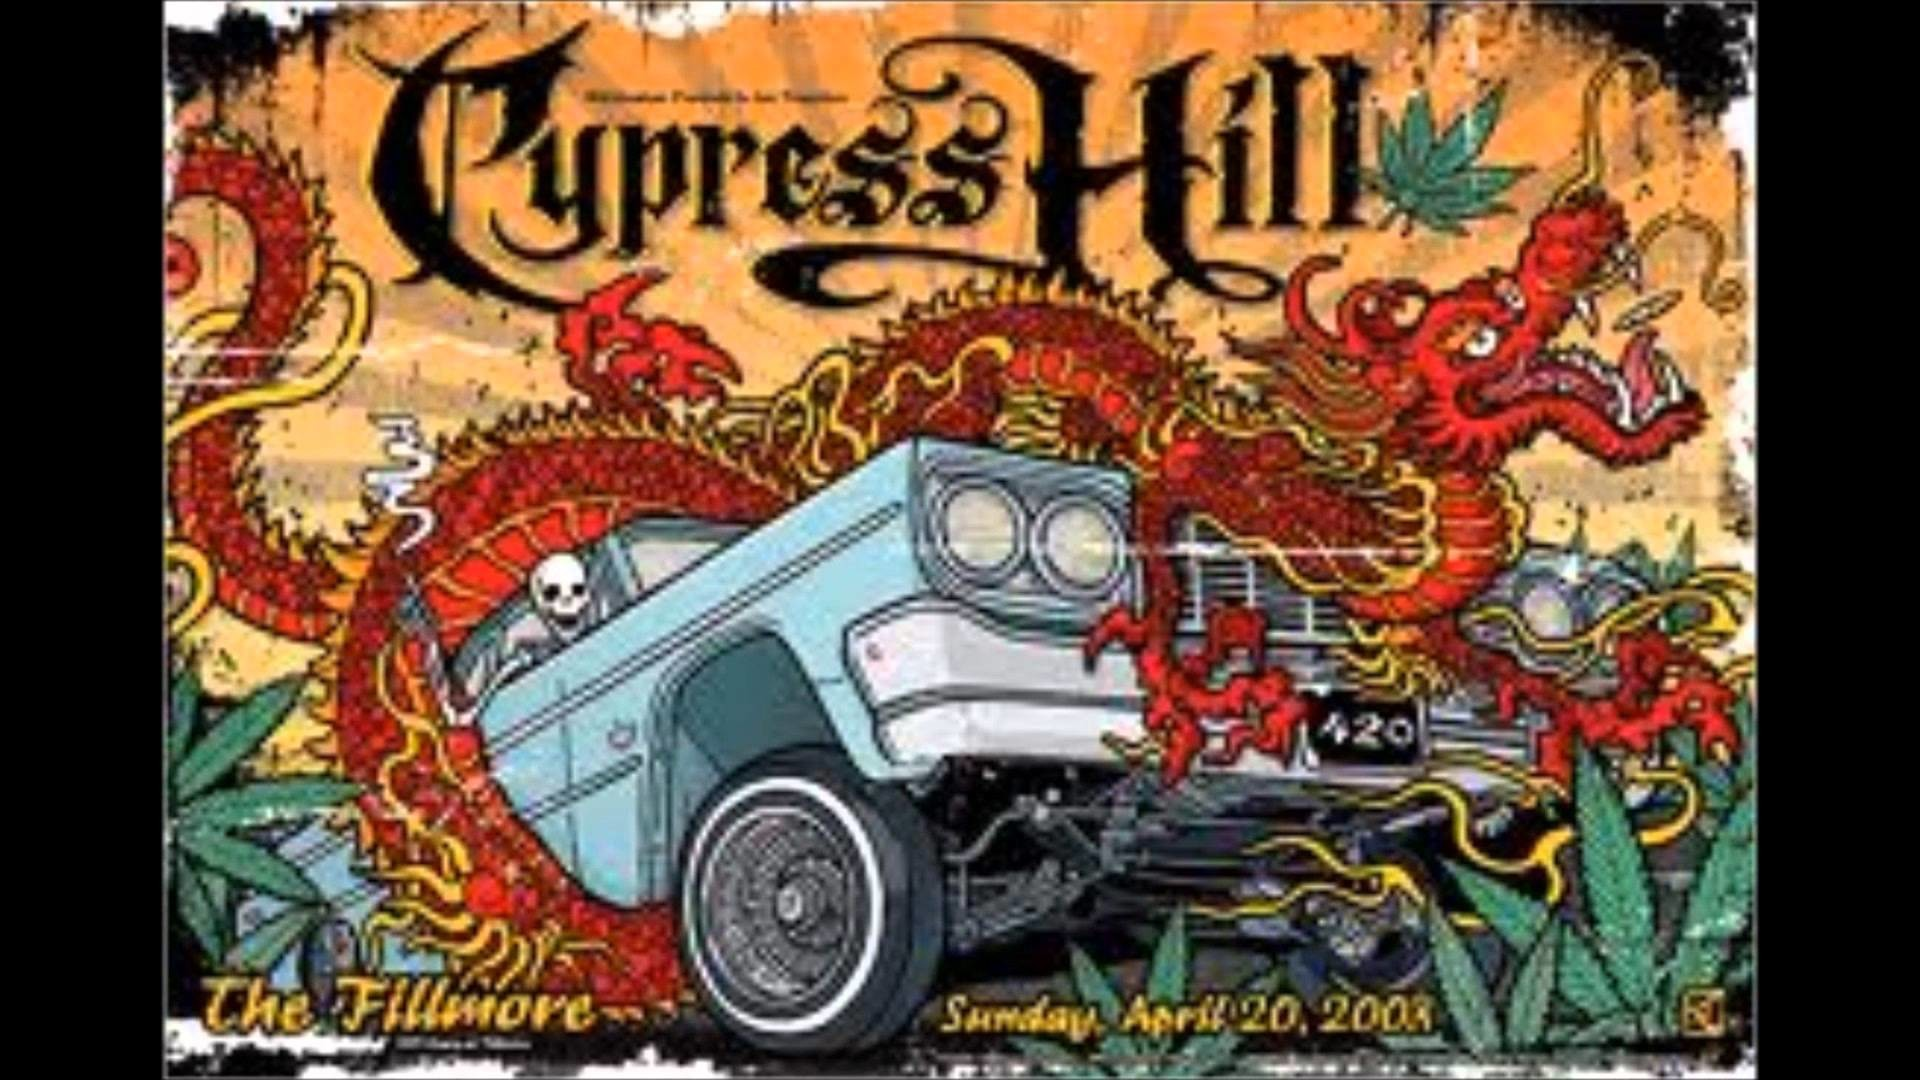 Cypress Hill Wallpapers Wallpapertag